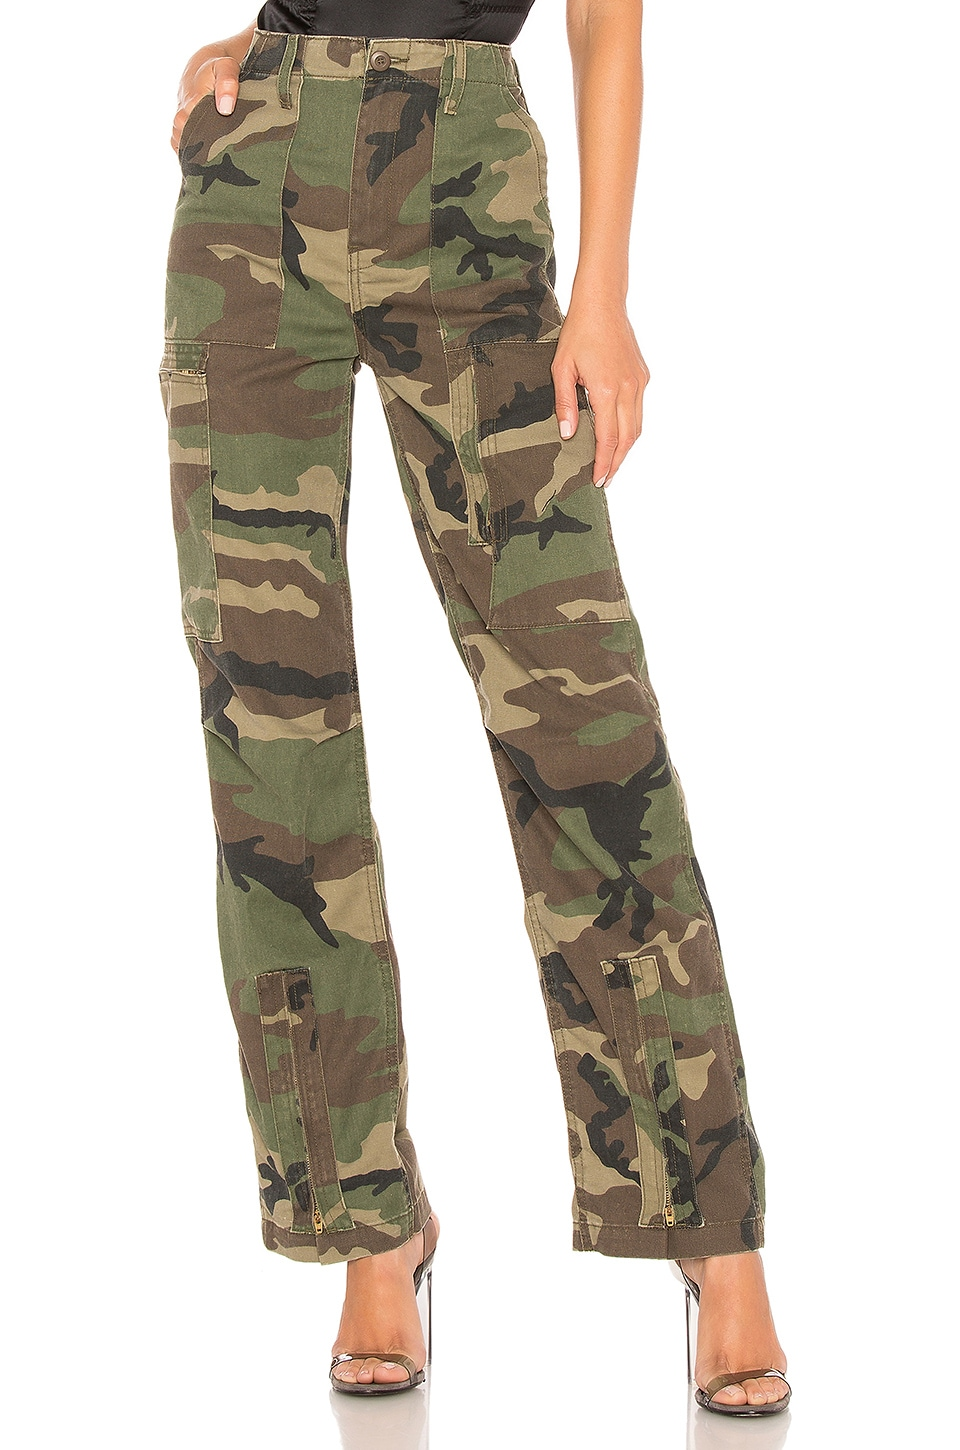 Originals High Waisted Cargo Pant by re/done, available on revolve.com Emily Ratajkowski Pants Exact Product